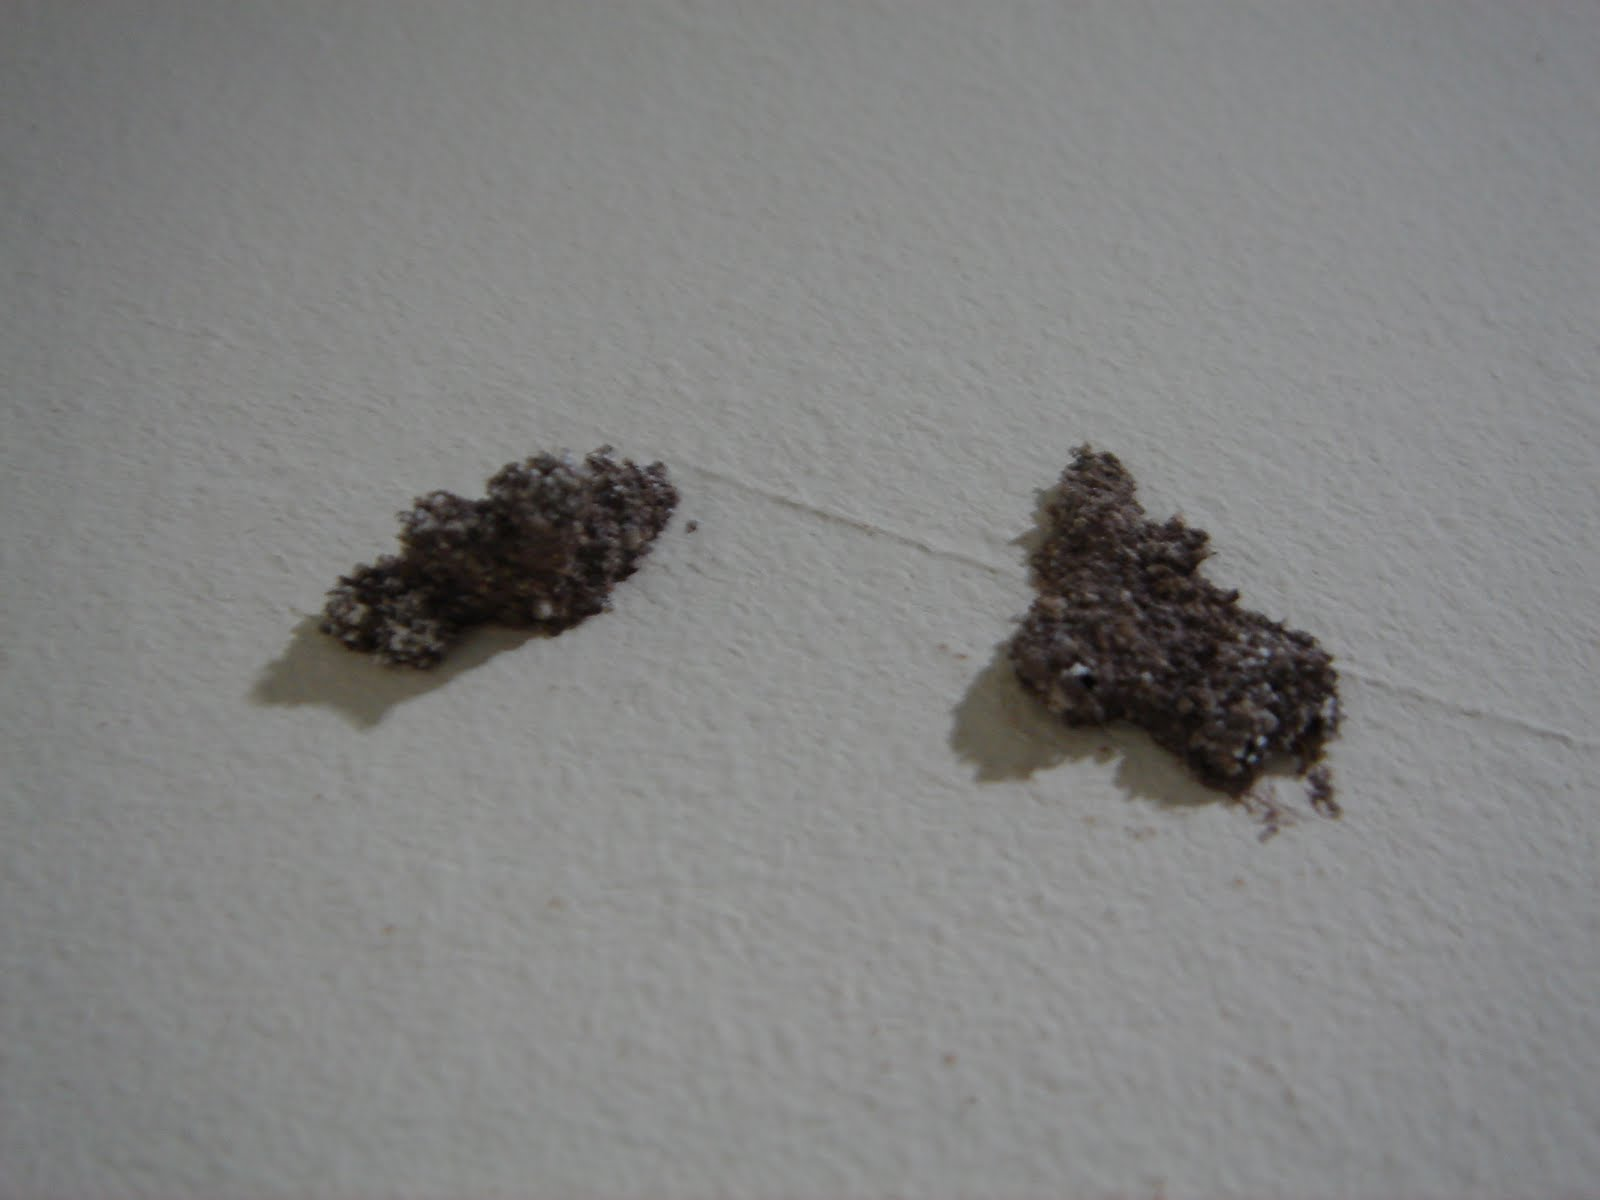 Termite Termite Nest In Wall